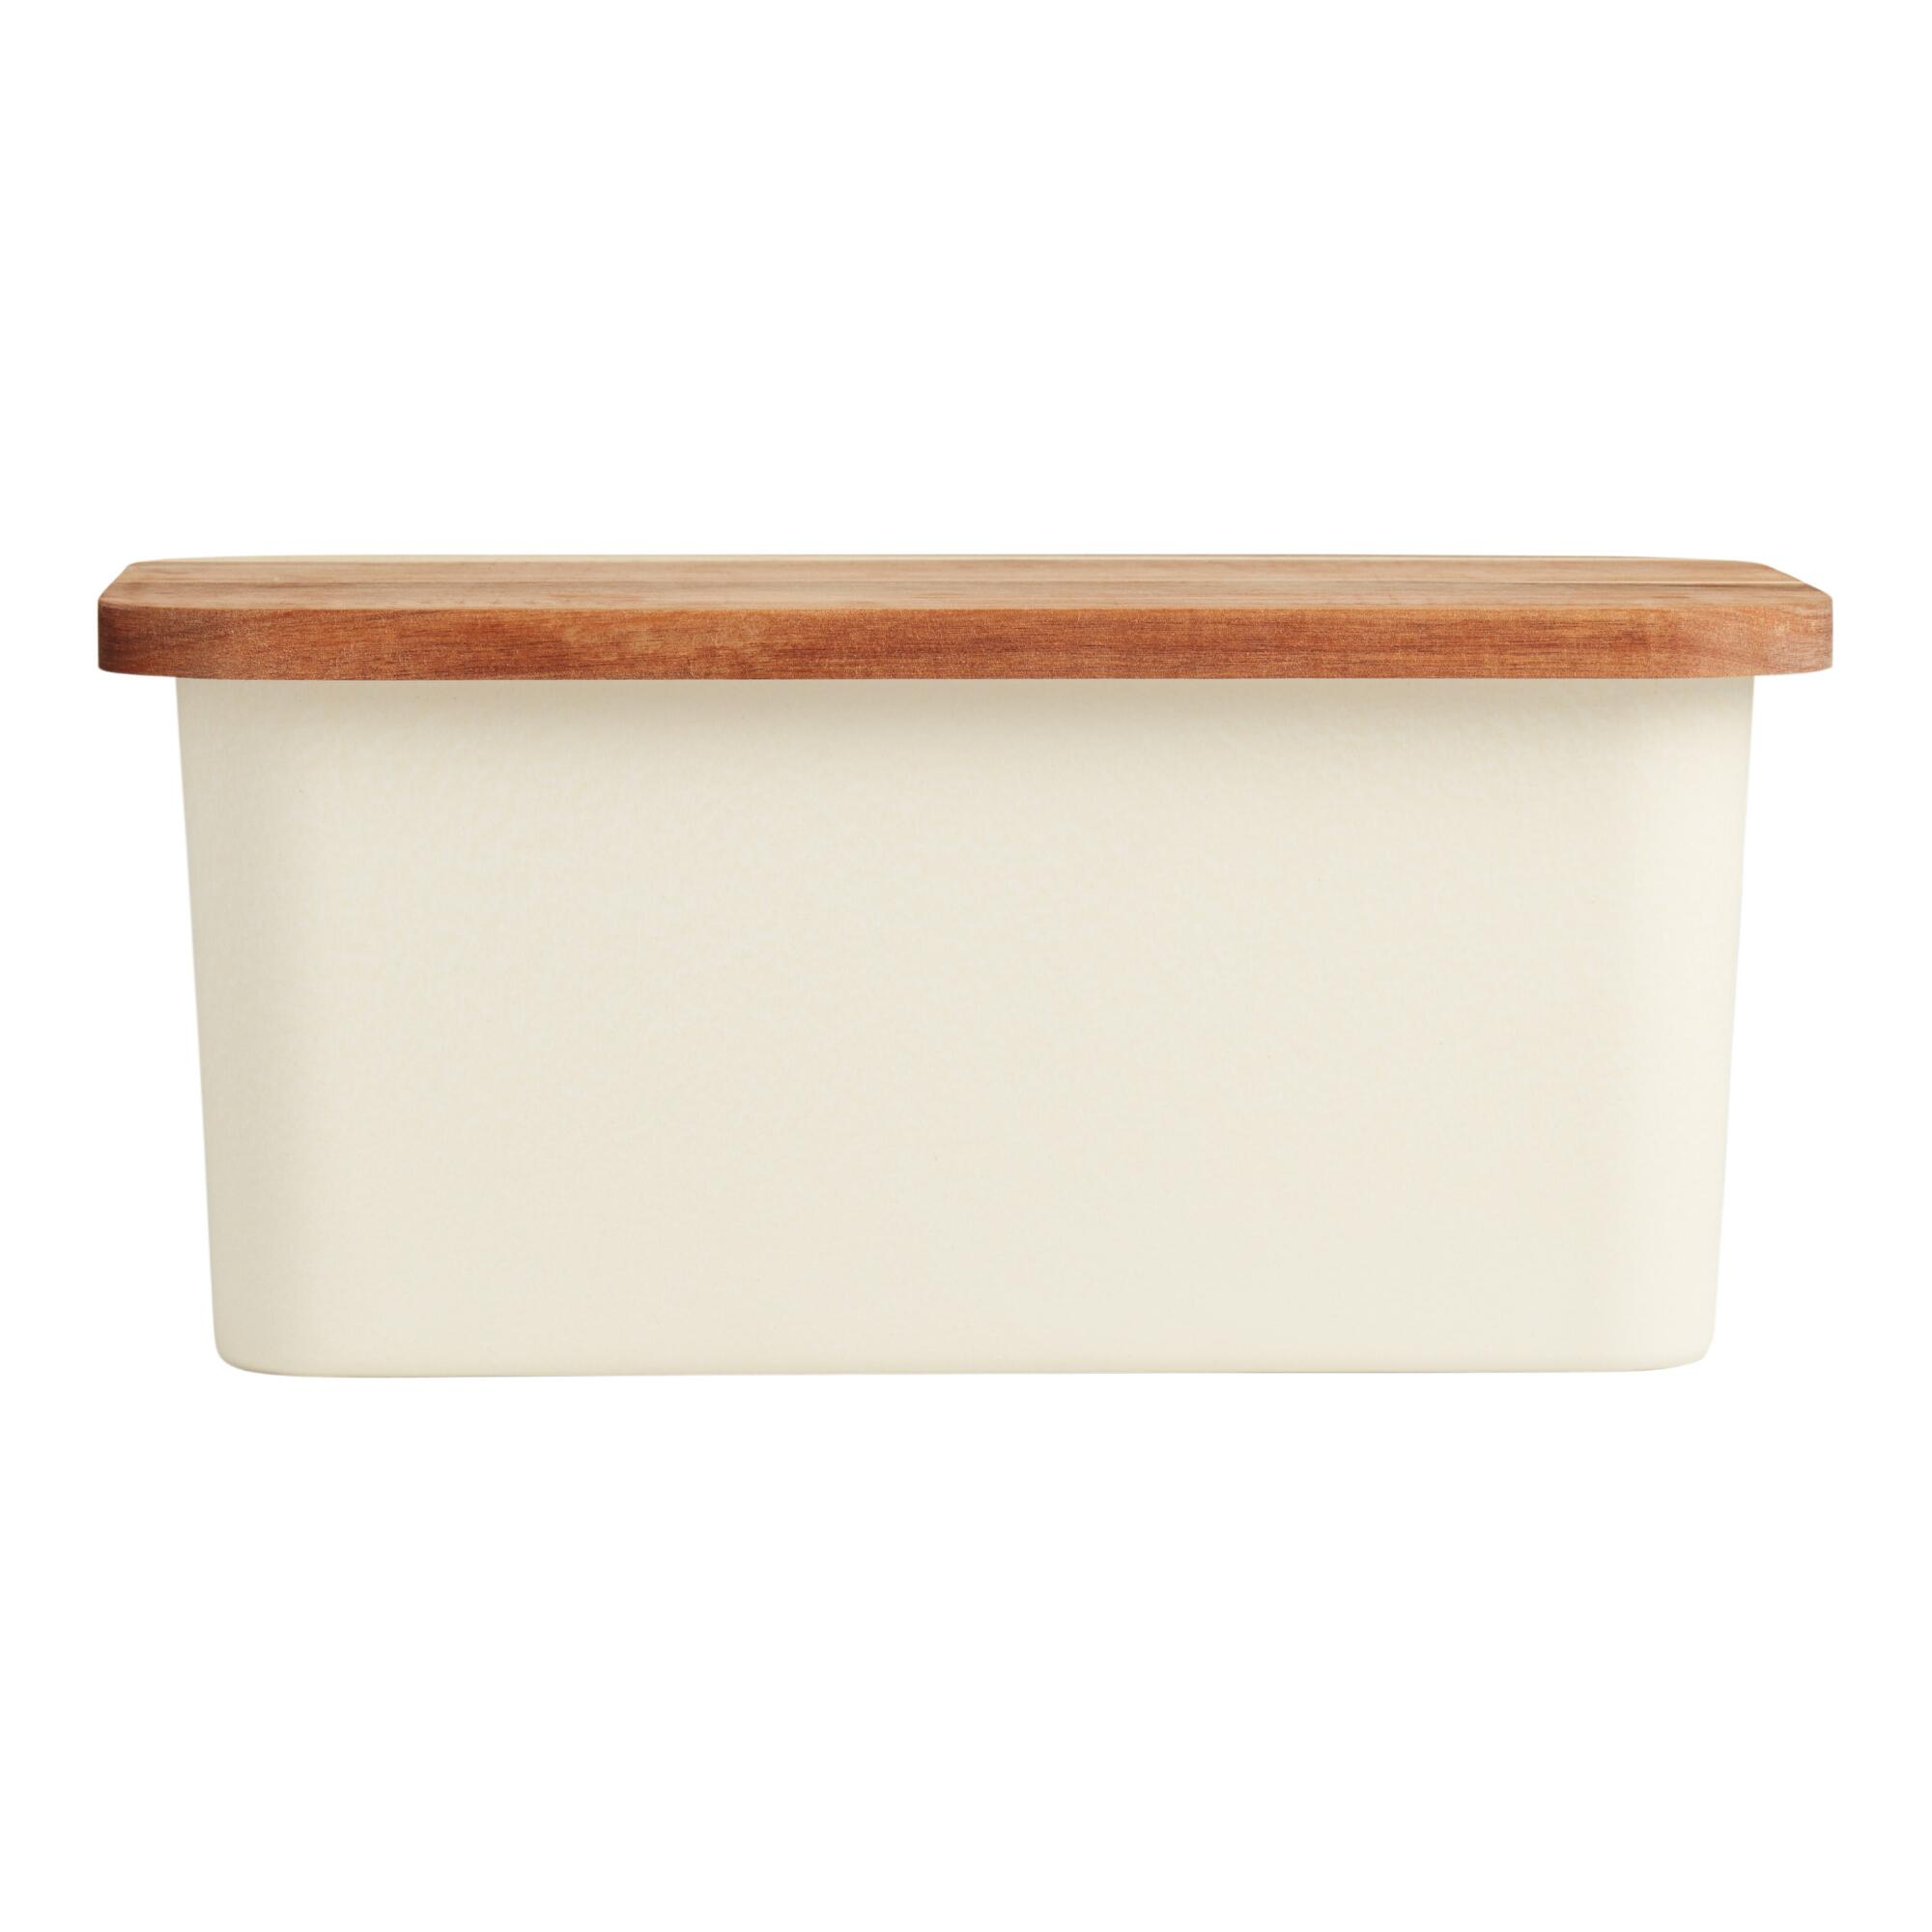 Bamboo Fiber Bread Storage Box with Wood Cutting Board Lid by World Market